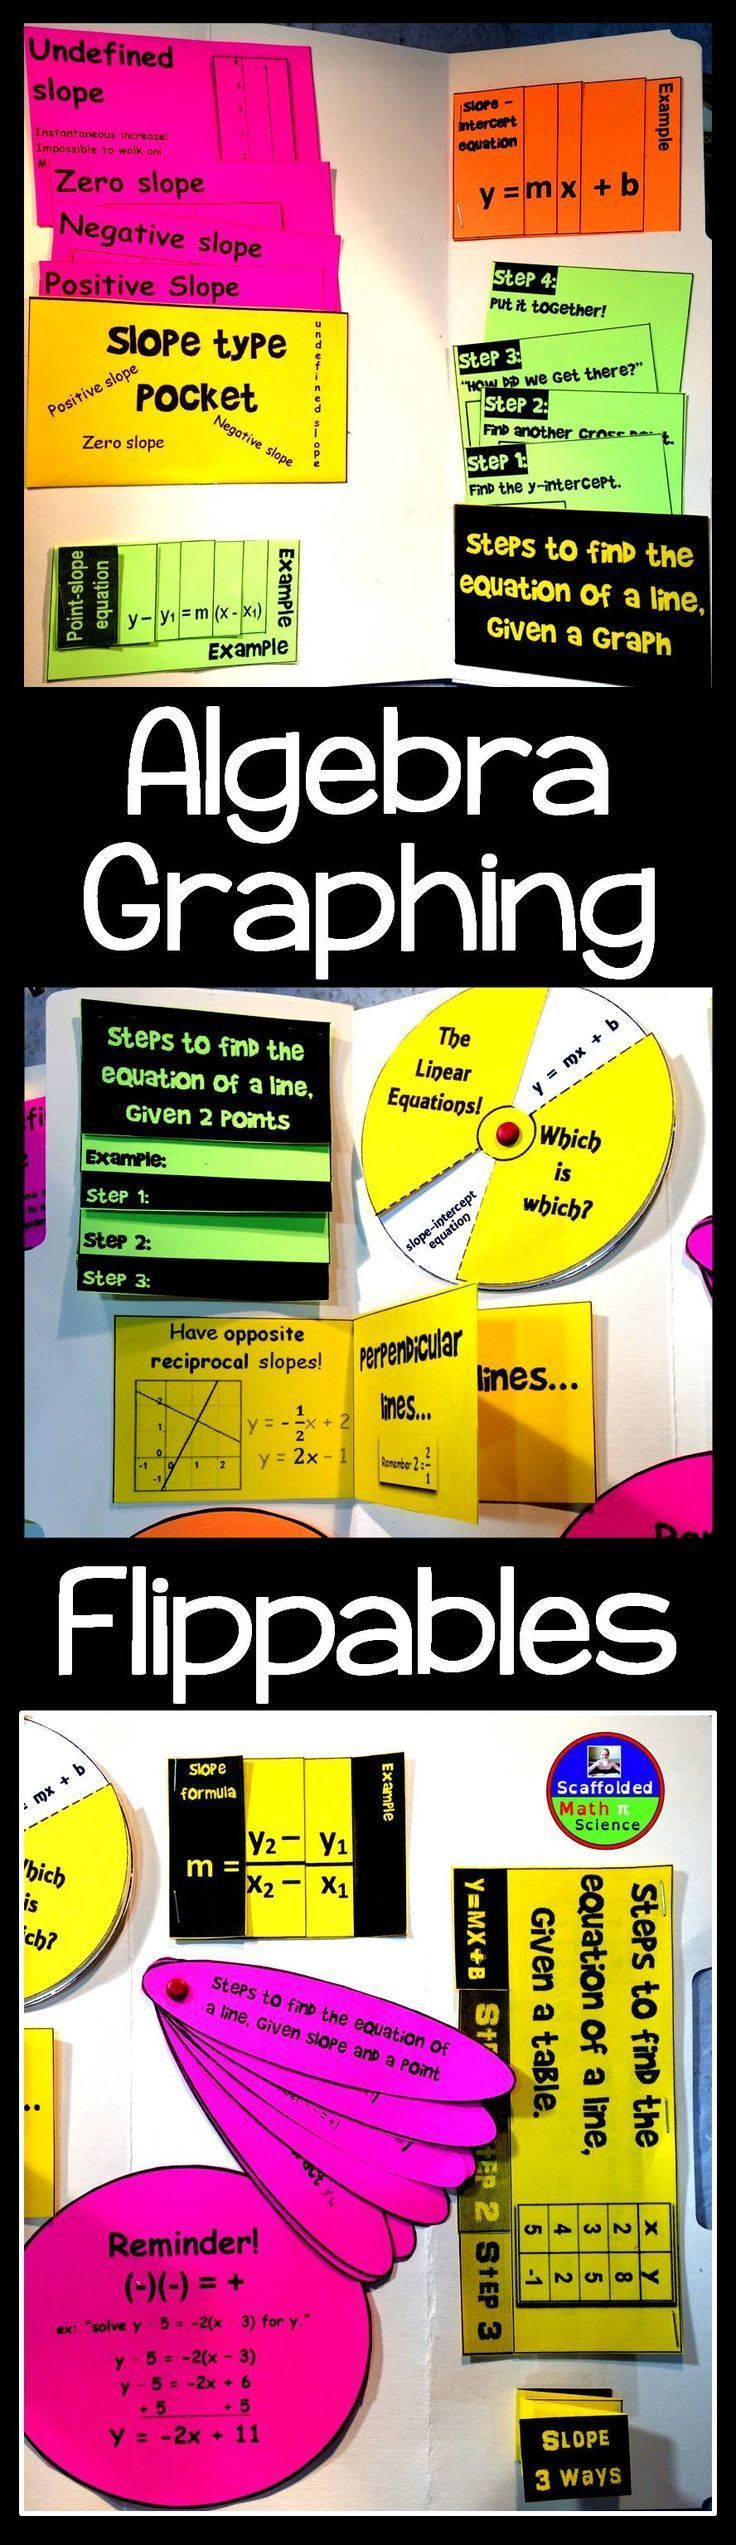 11 highly-interactive Algebra flippables for graphing in Algebra. Great for a lapbook or interactive notebook.